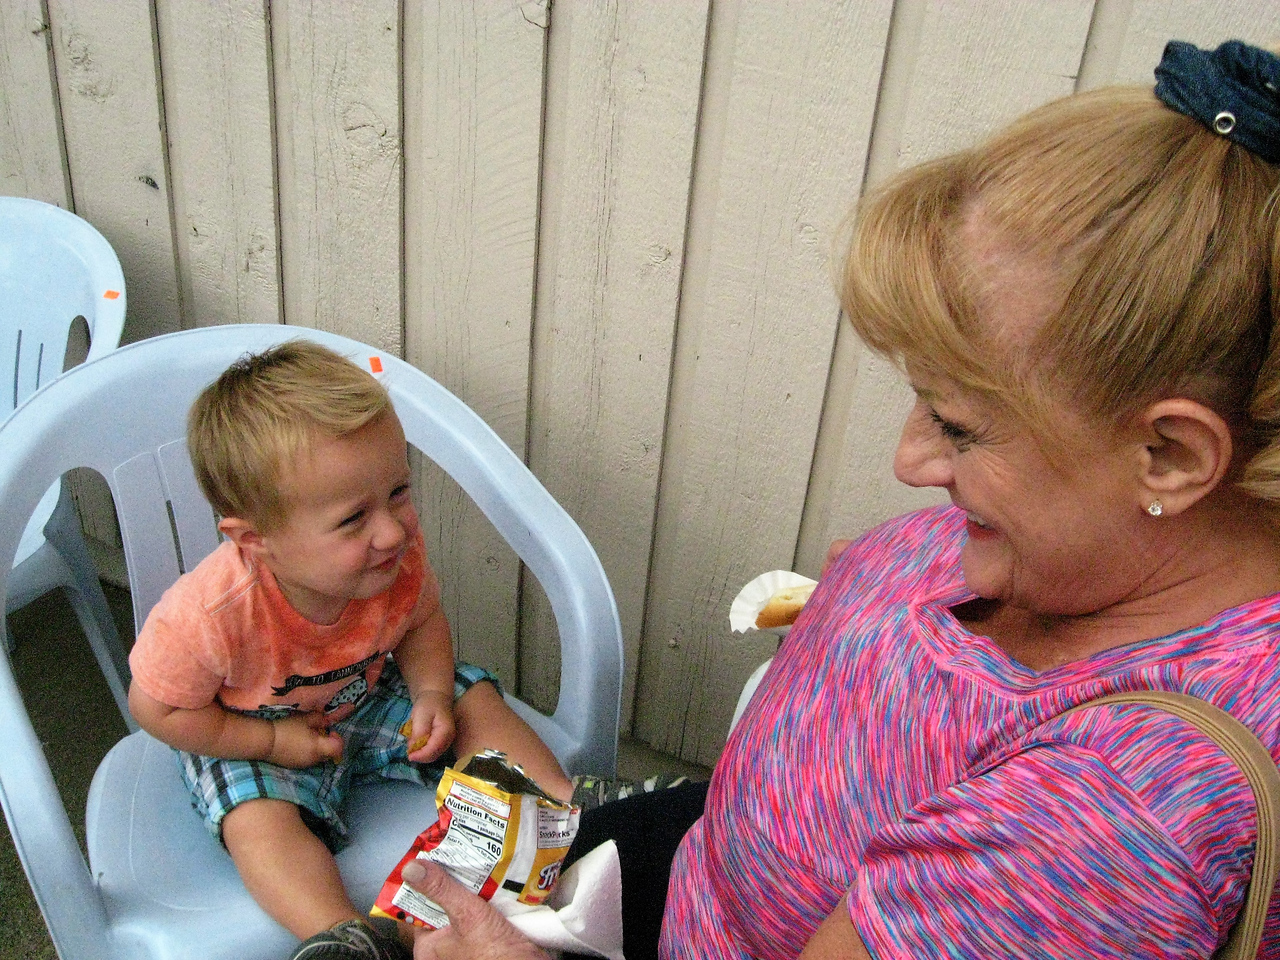 BOB SANDRICK / GAZETTE Henry Richlovsky, 1, of Mansfied munched on corn chips with grandmother Jackie Parente of Granger Township on Saturday during a shopping visit to ReStore at 342 East Smith Road in Medina.